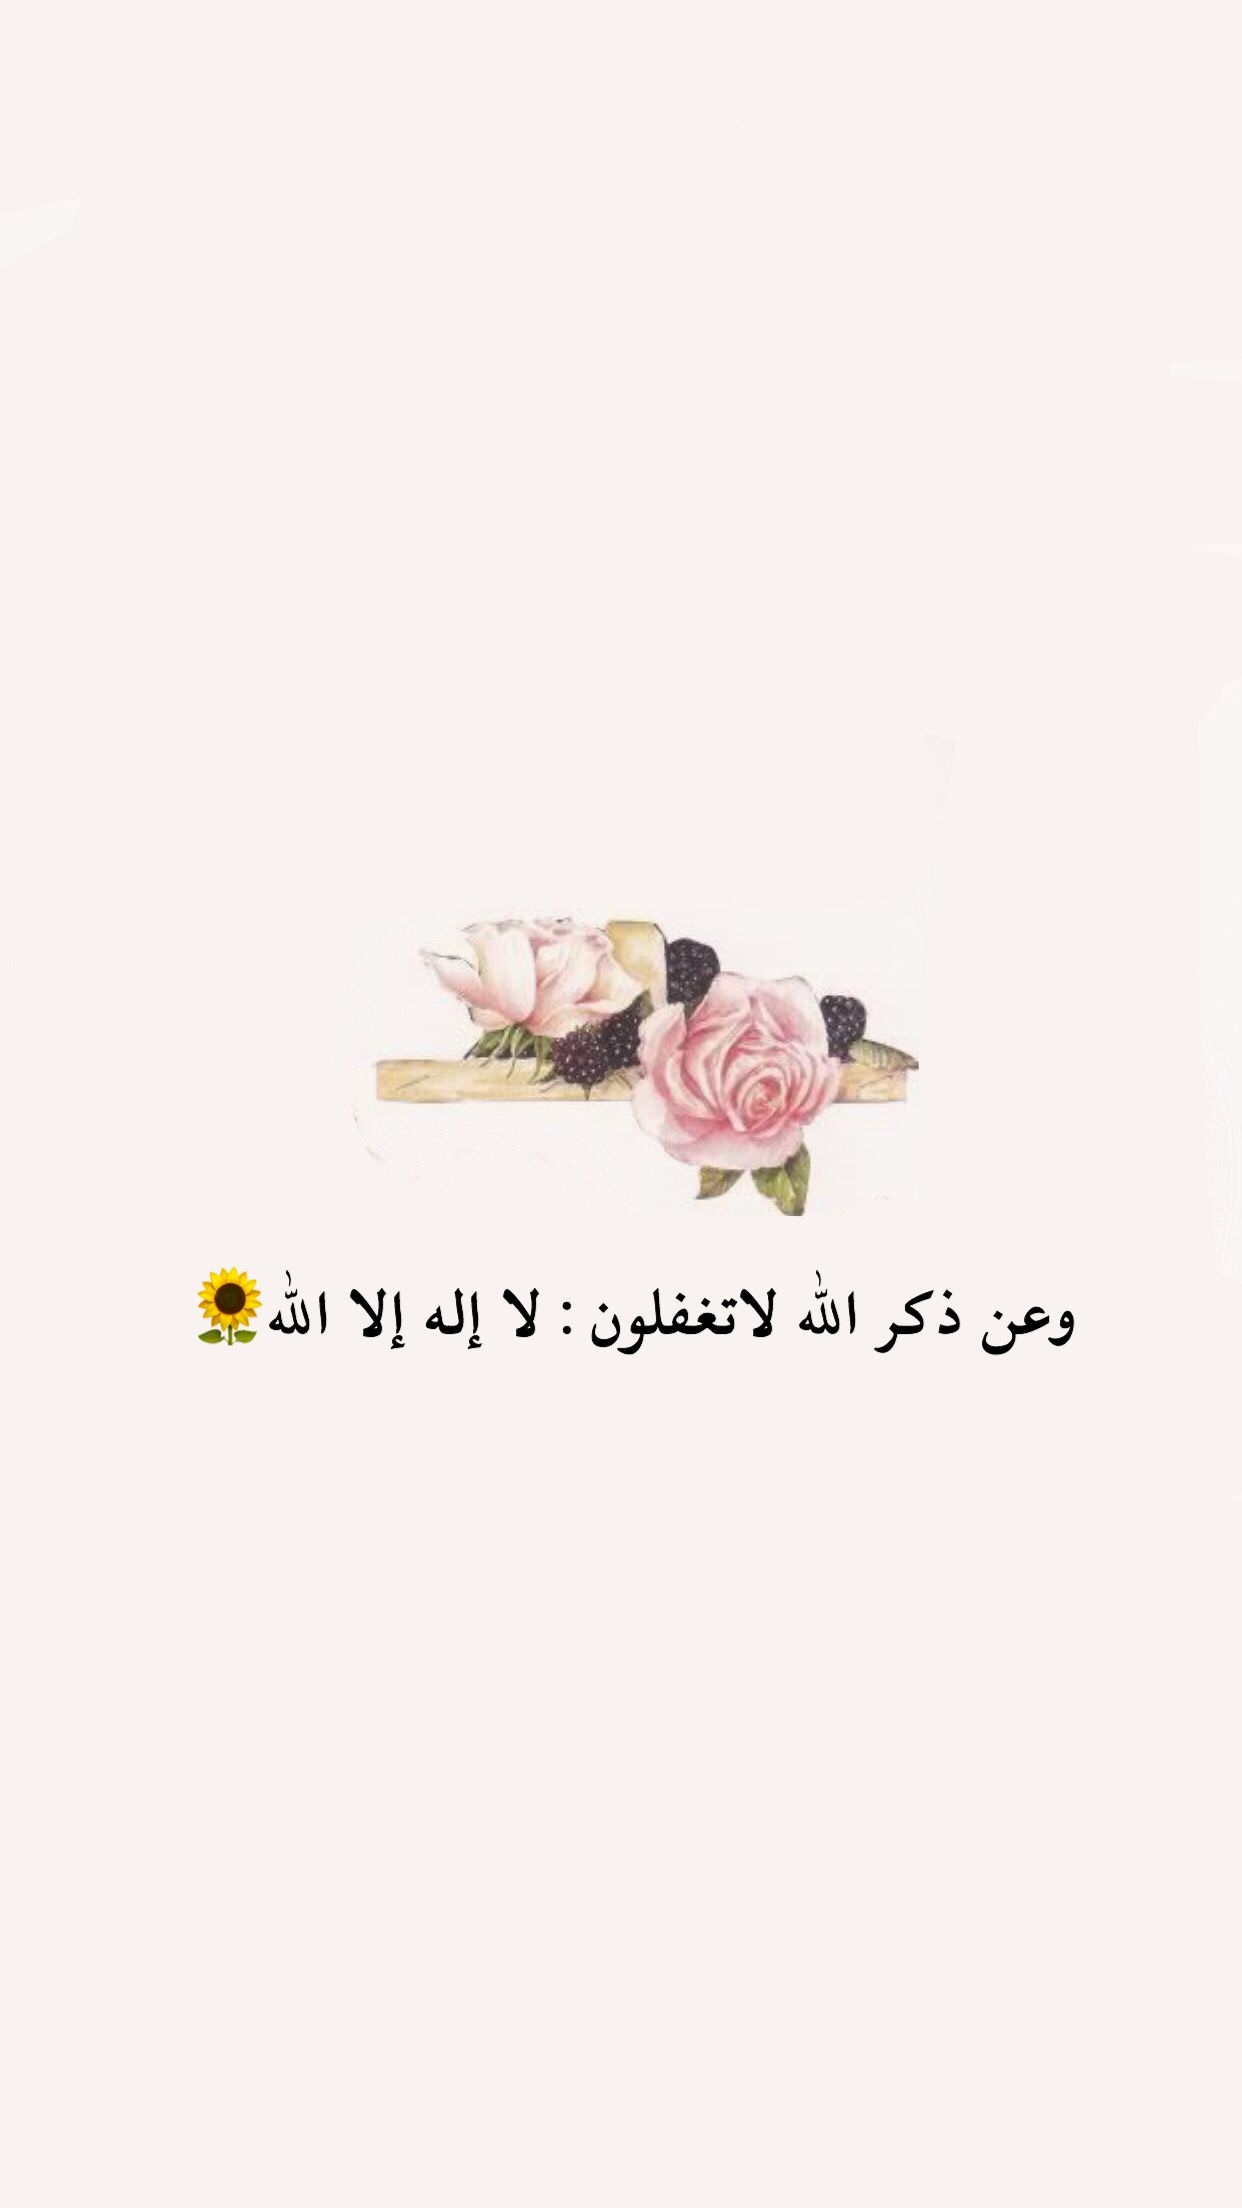 Pin By Hned On نور Islamic Quotes Wallpaper Quran Quotes Quran Quotes Inspirational